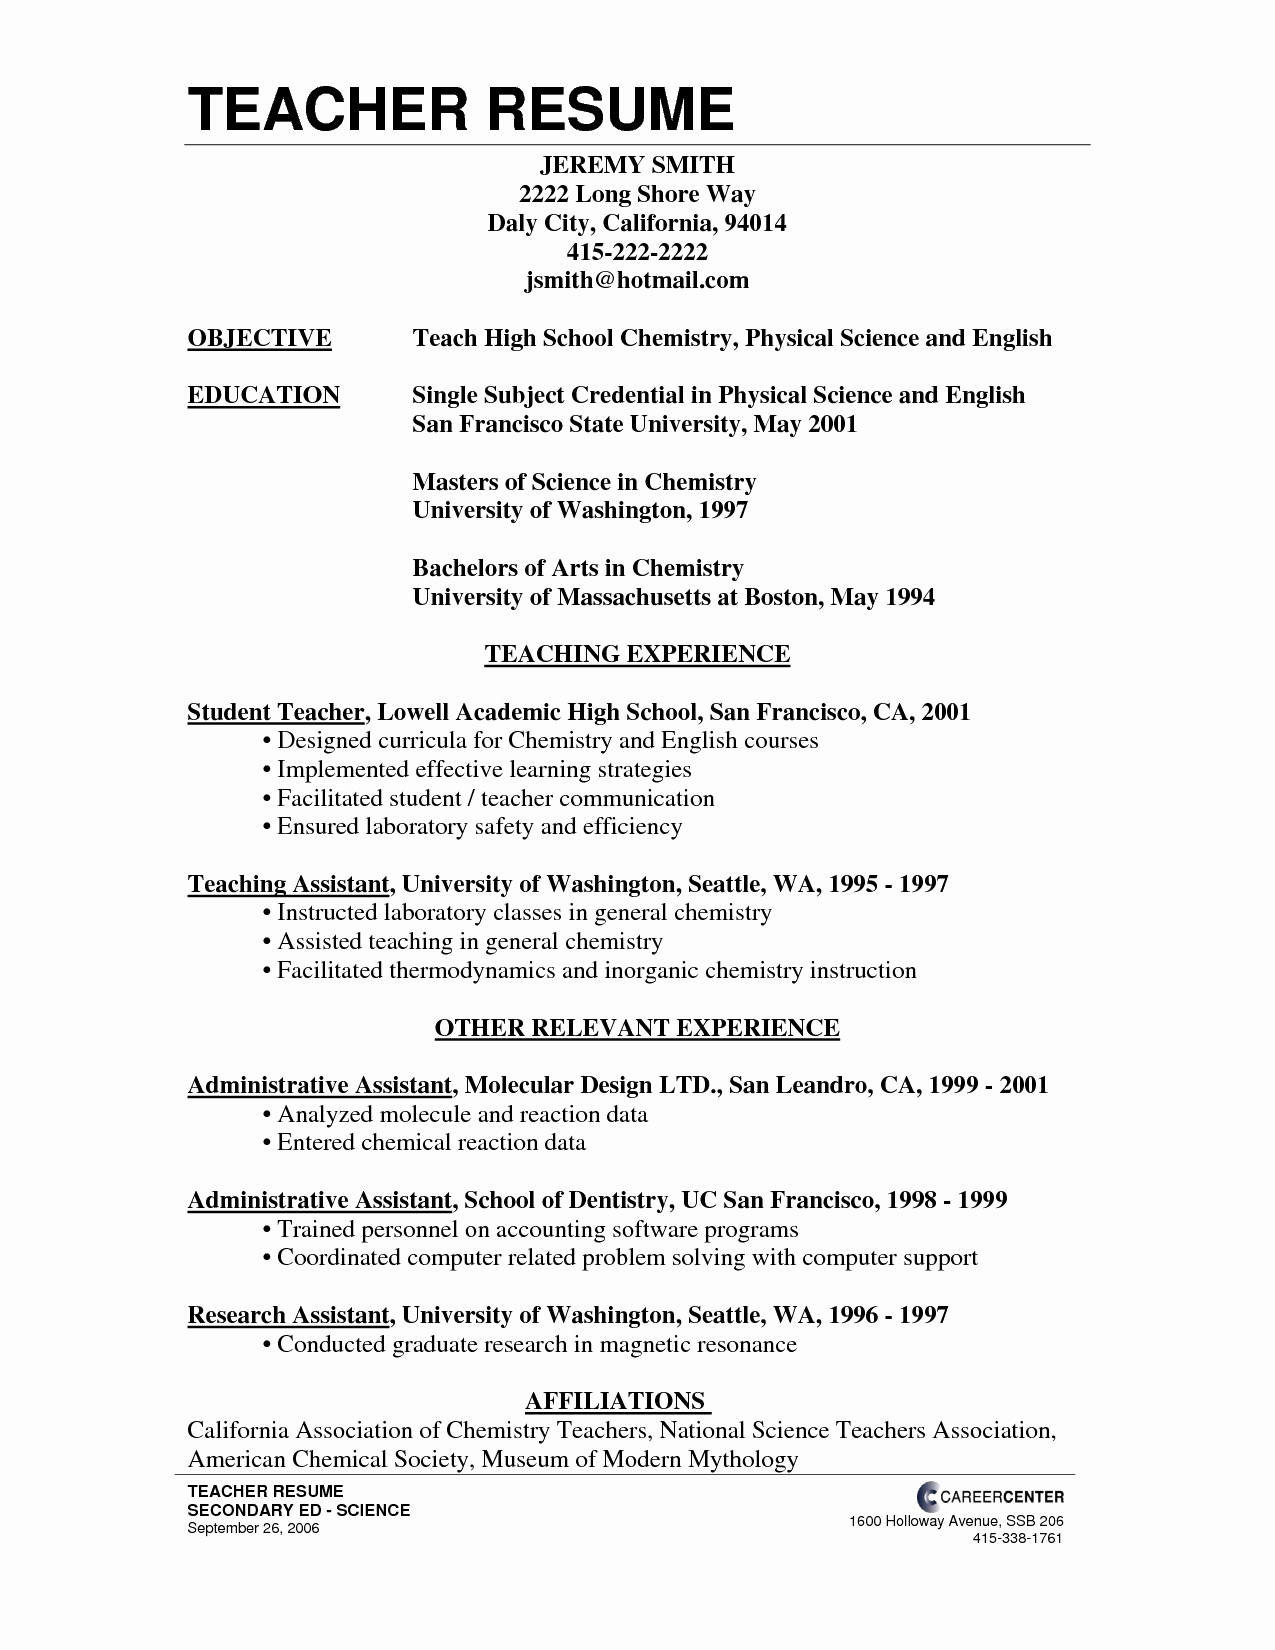 Good Cover Letter Template - Resume Cover Letter Example New Free Cover Letter Templates Examples